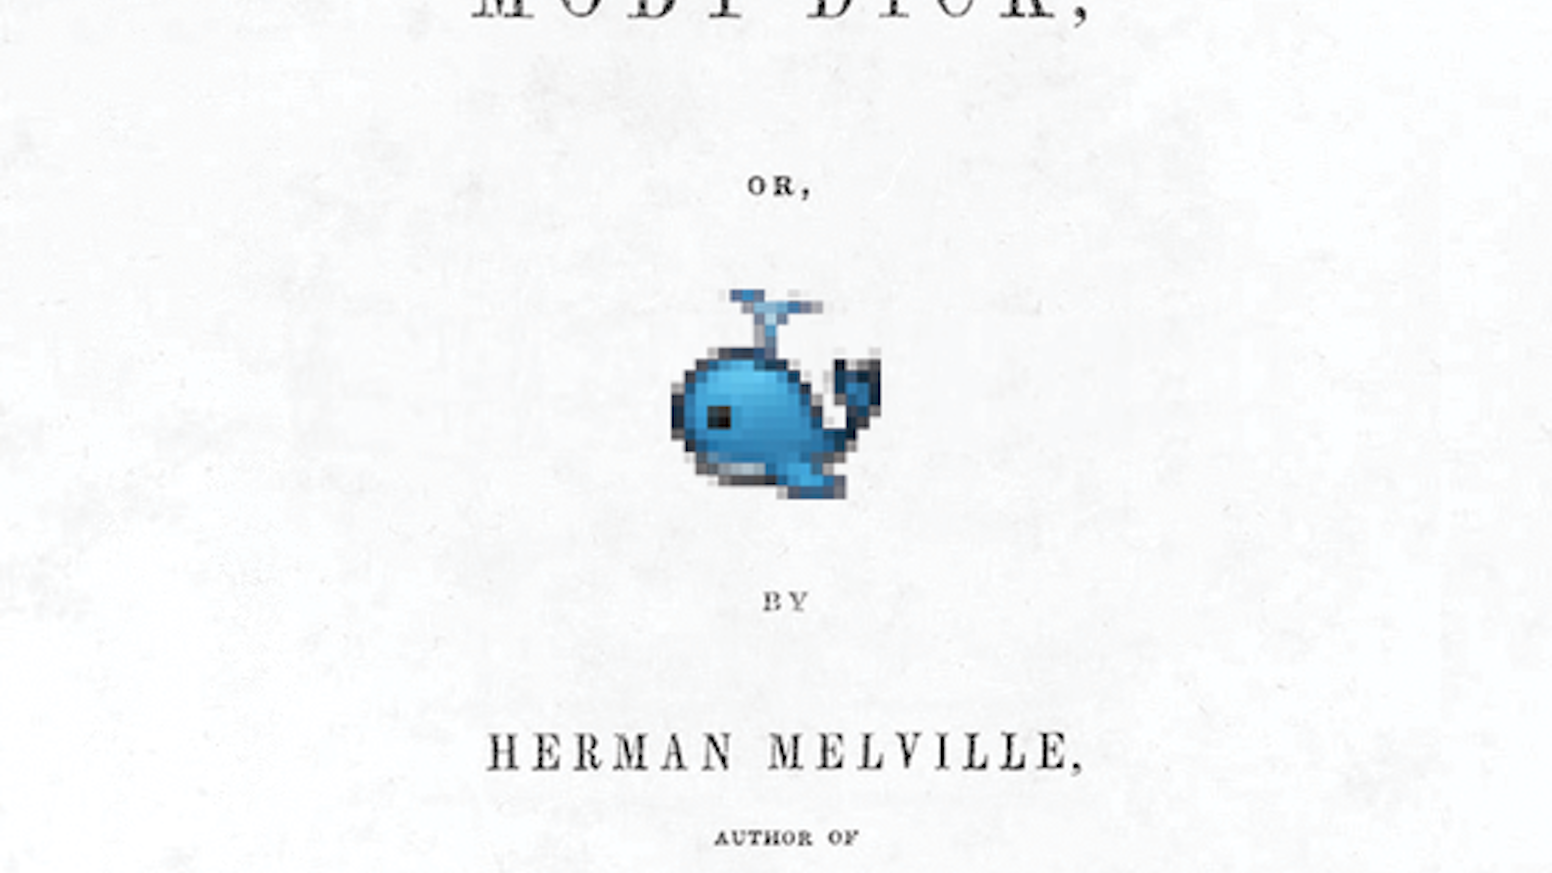 Translating Moby Dick into Japanese Emoji Icons using Amazon's Mechanical Turk.